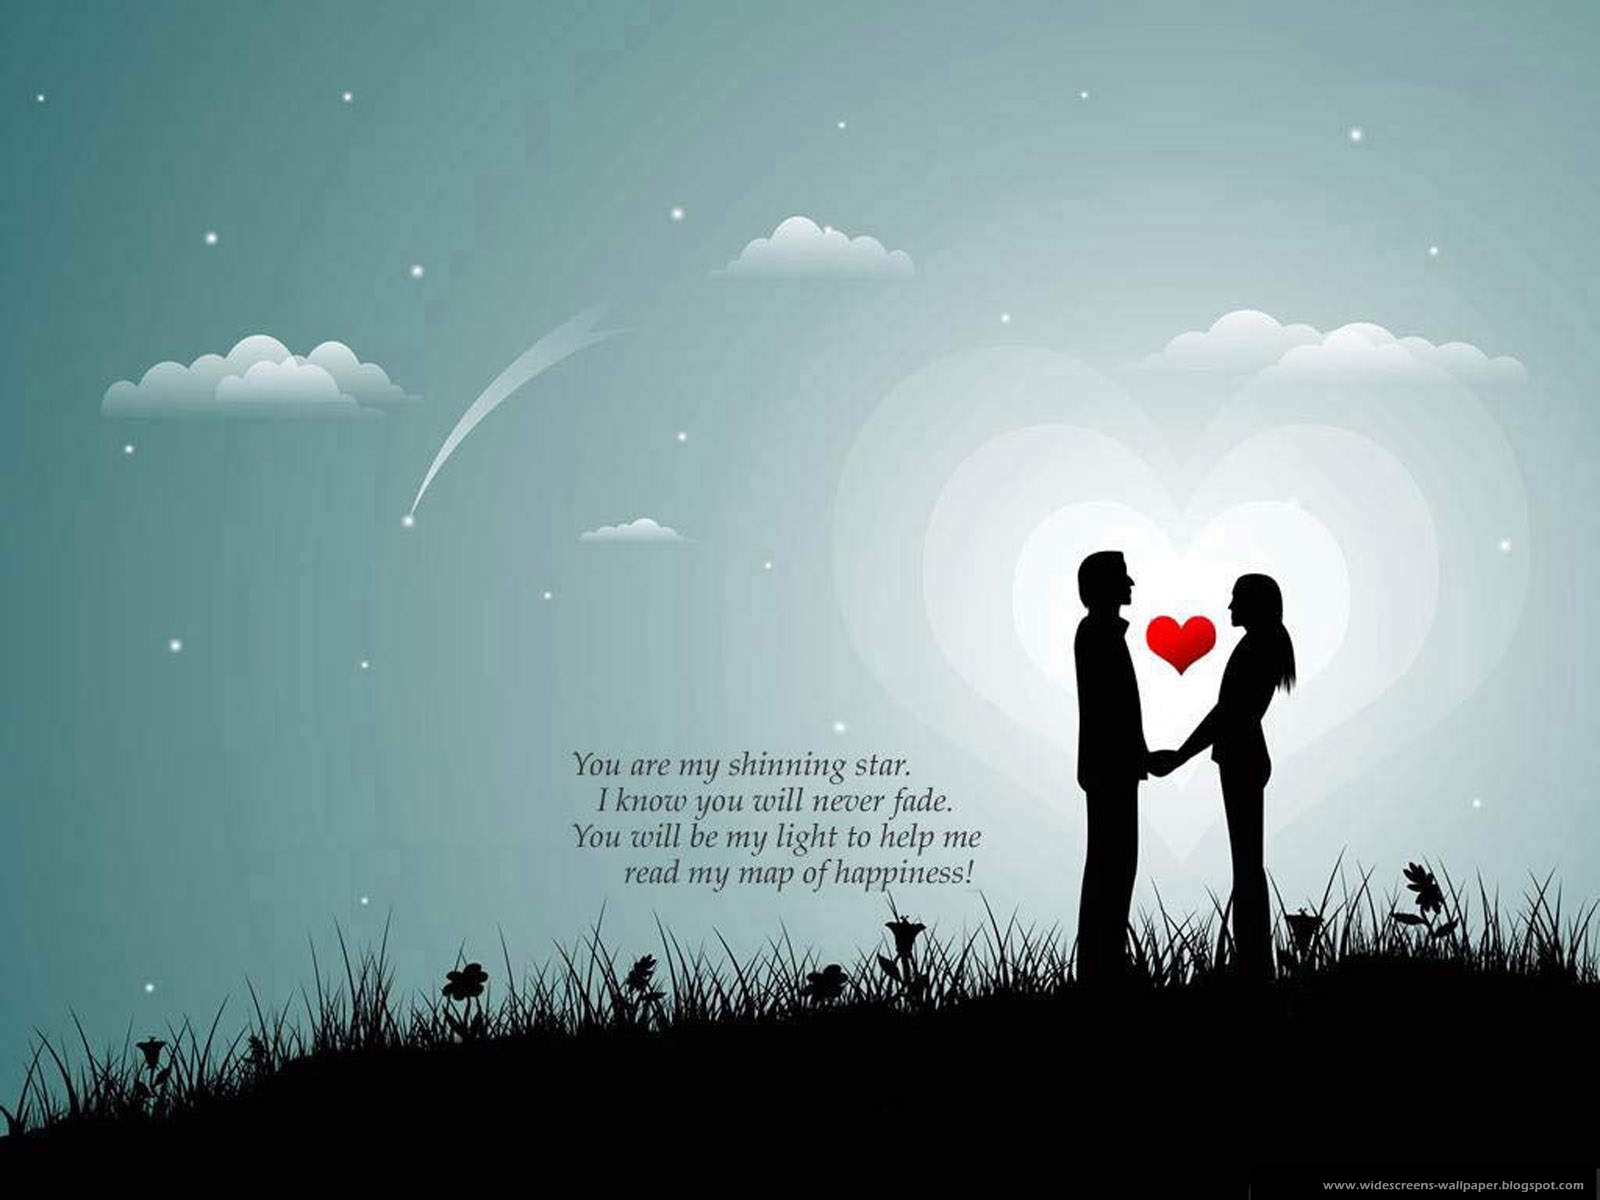 Wallpaper Love couple Romantic Quotes : Wallpaper collection For Your computer and Mobile Phones: New Romantic Love Words And Quotations ...